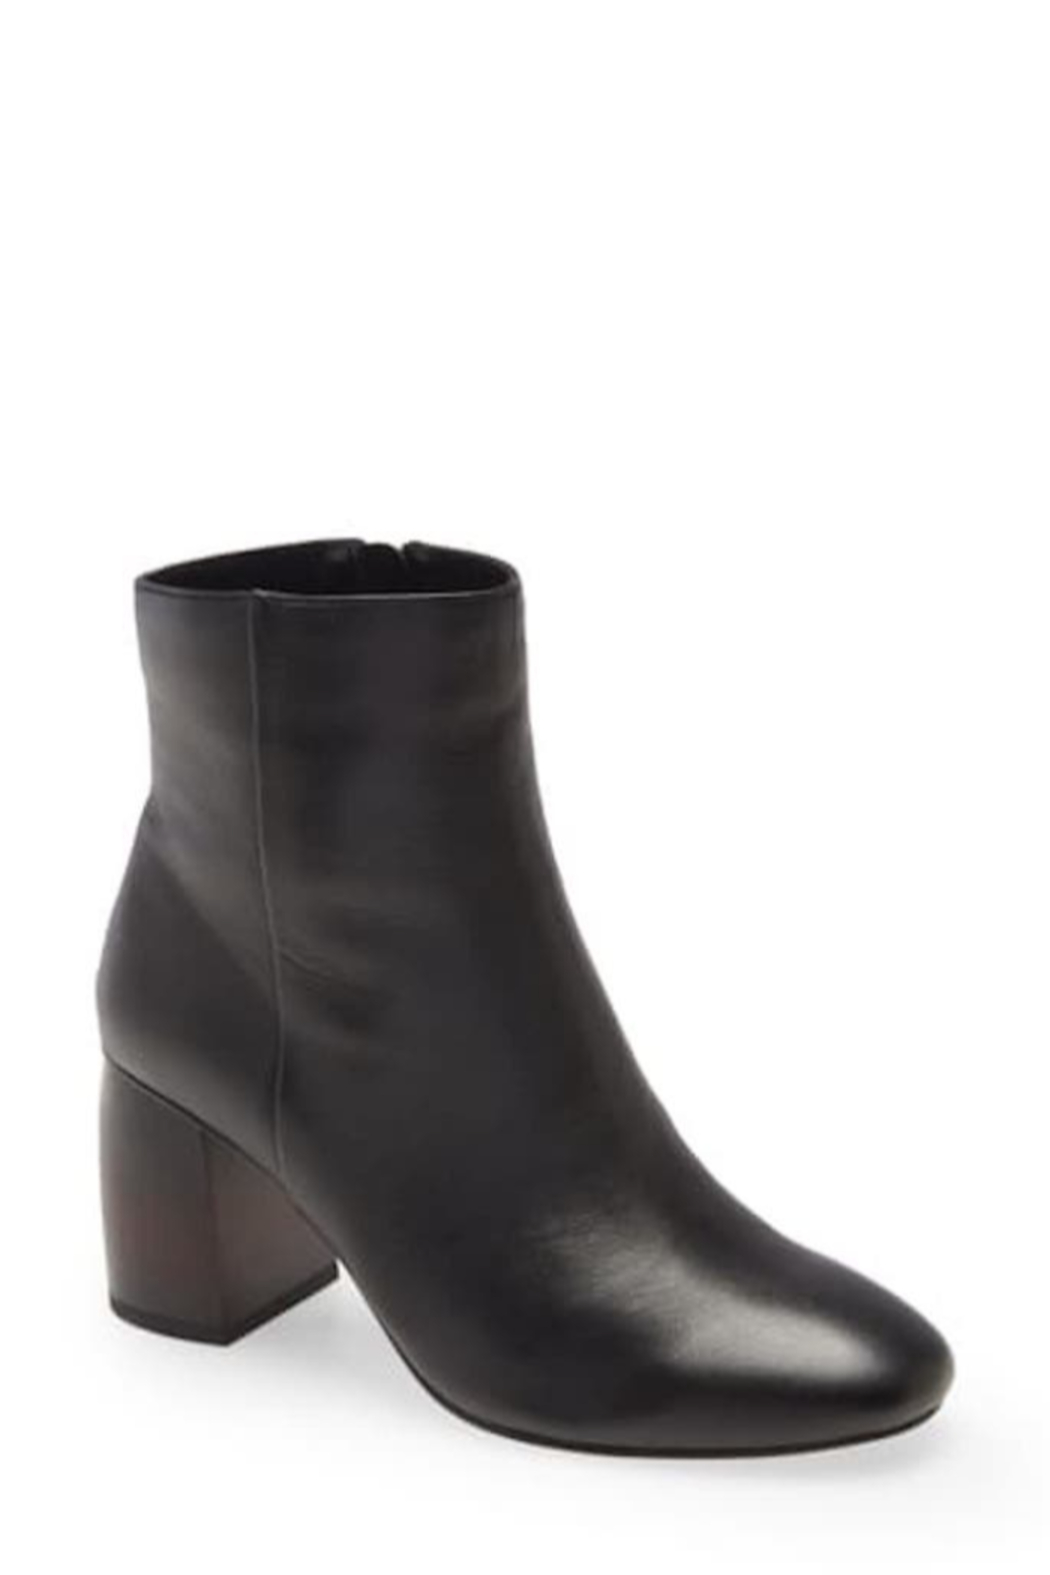 Sanctuary Bossanova Dress Bootie - Main Image